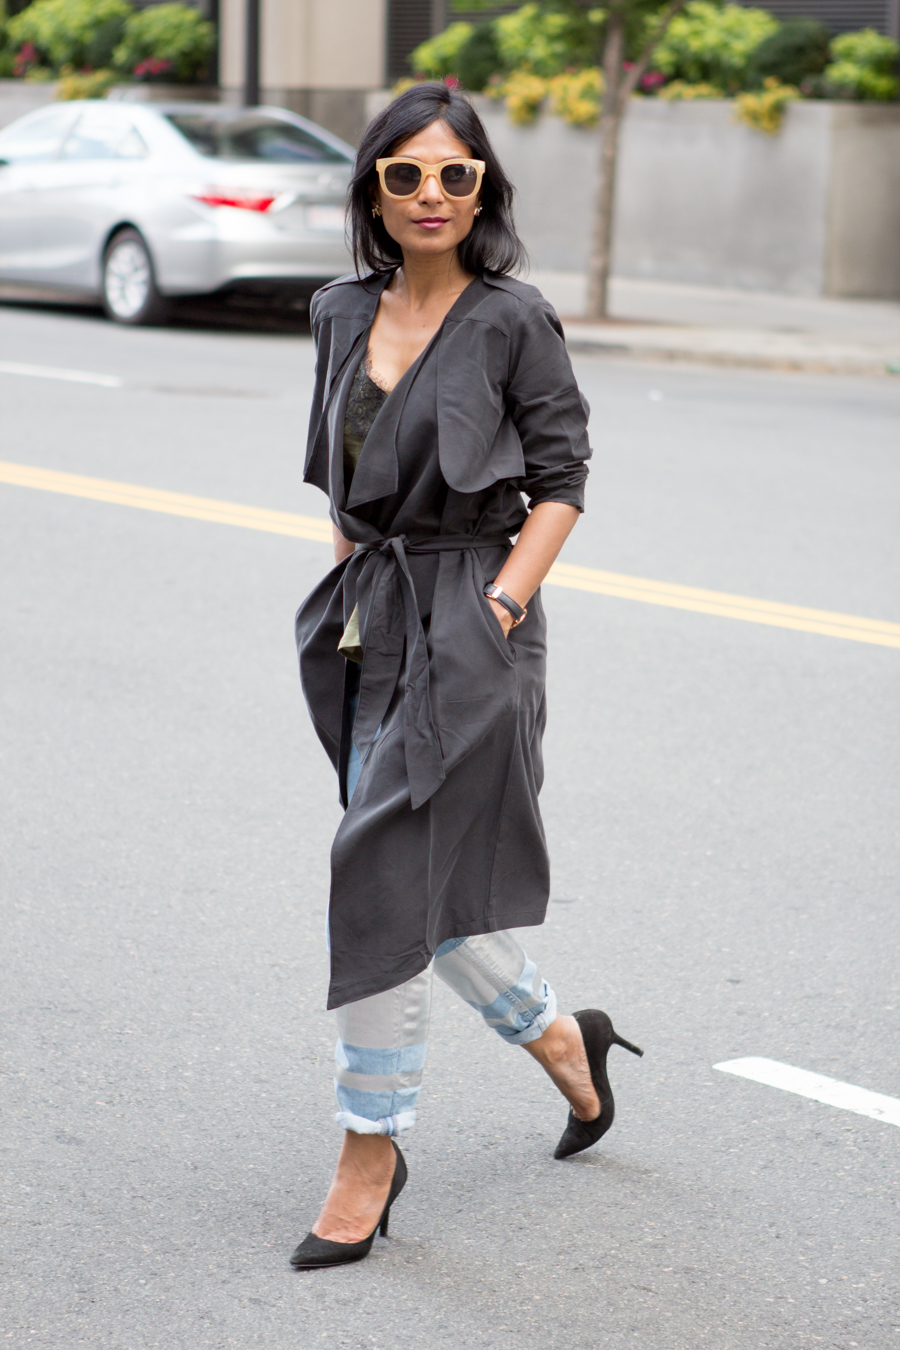 prefall style, pre-fall 2016, petite fashion, leith, nordstrom, draped trench, belted trench, black suede pumps, boyfriend jeans, rebecca minkoff, topshop, transitional style, loft